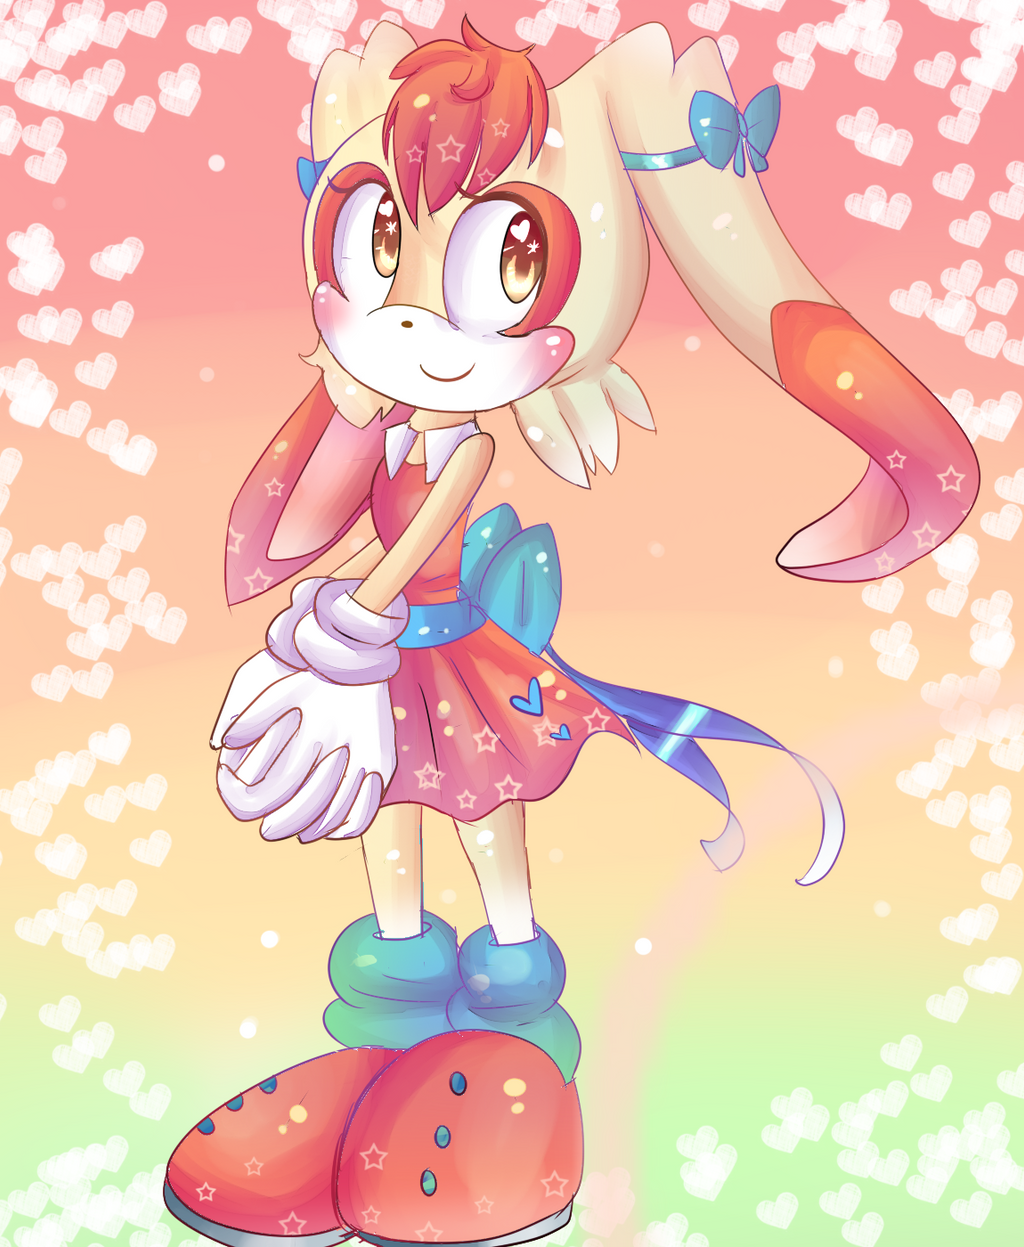 Older Cream the Rabbit by oOShine-StarOo on DeviantArt